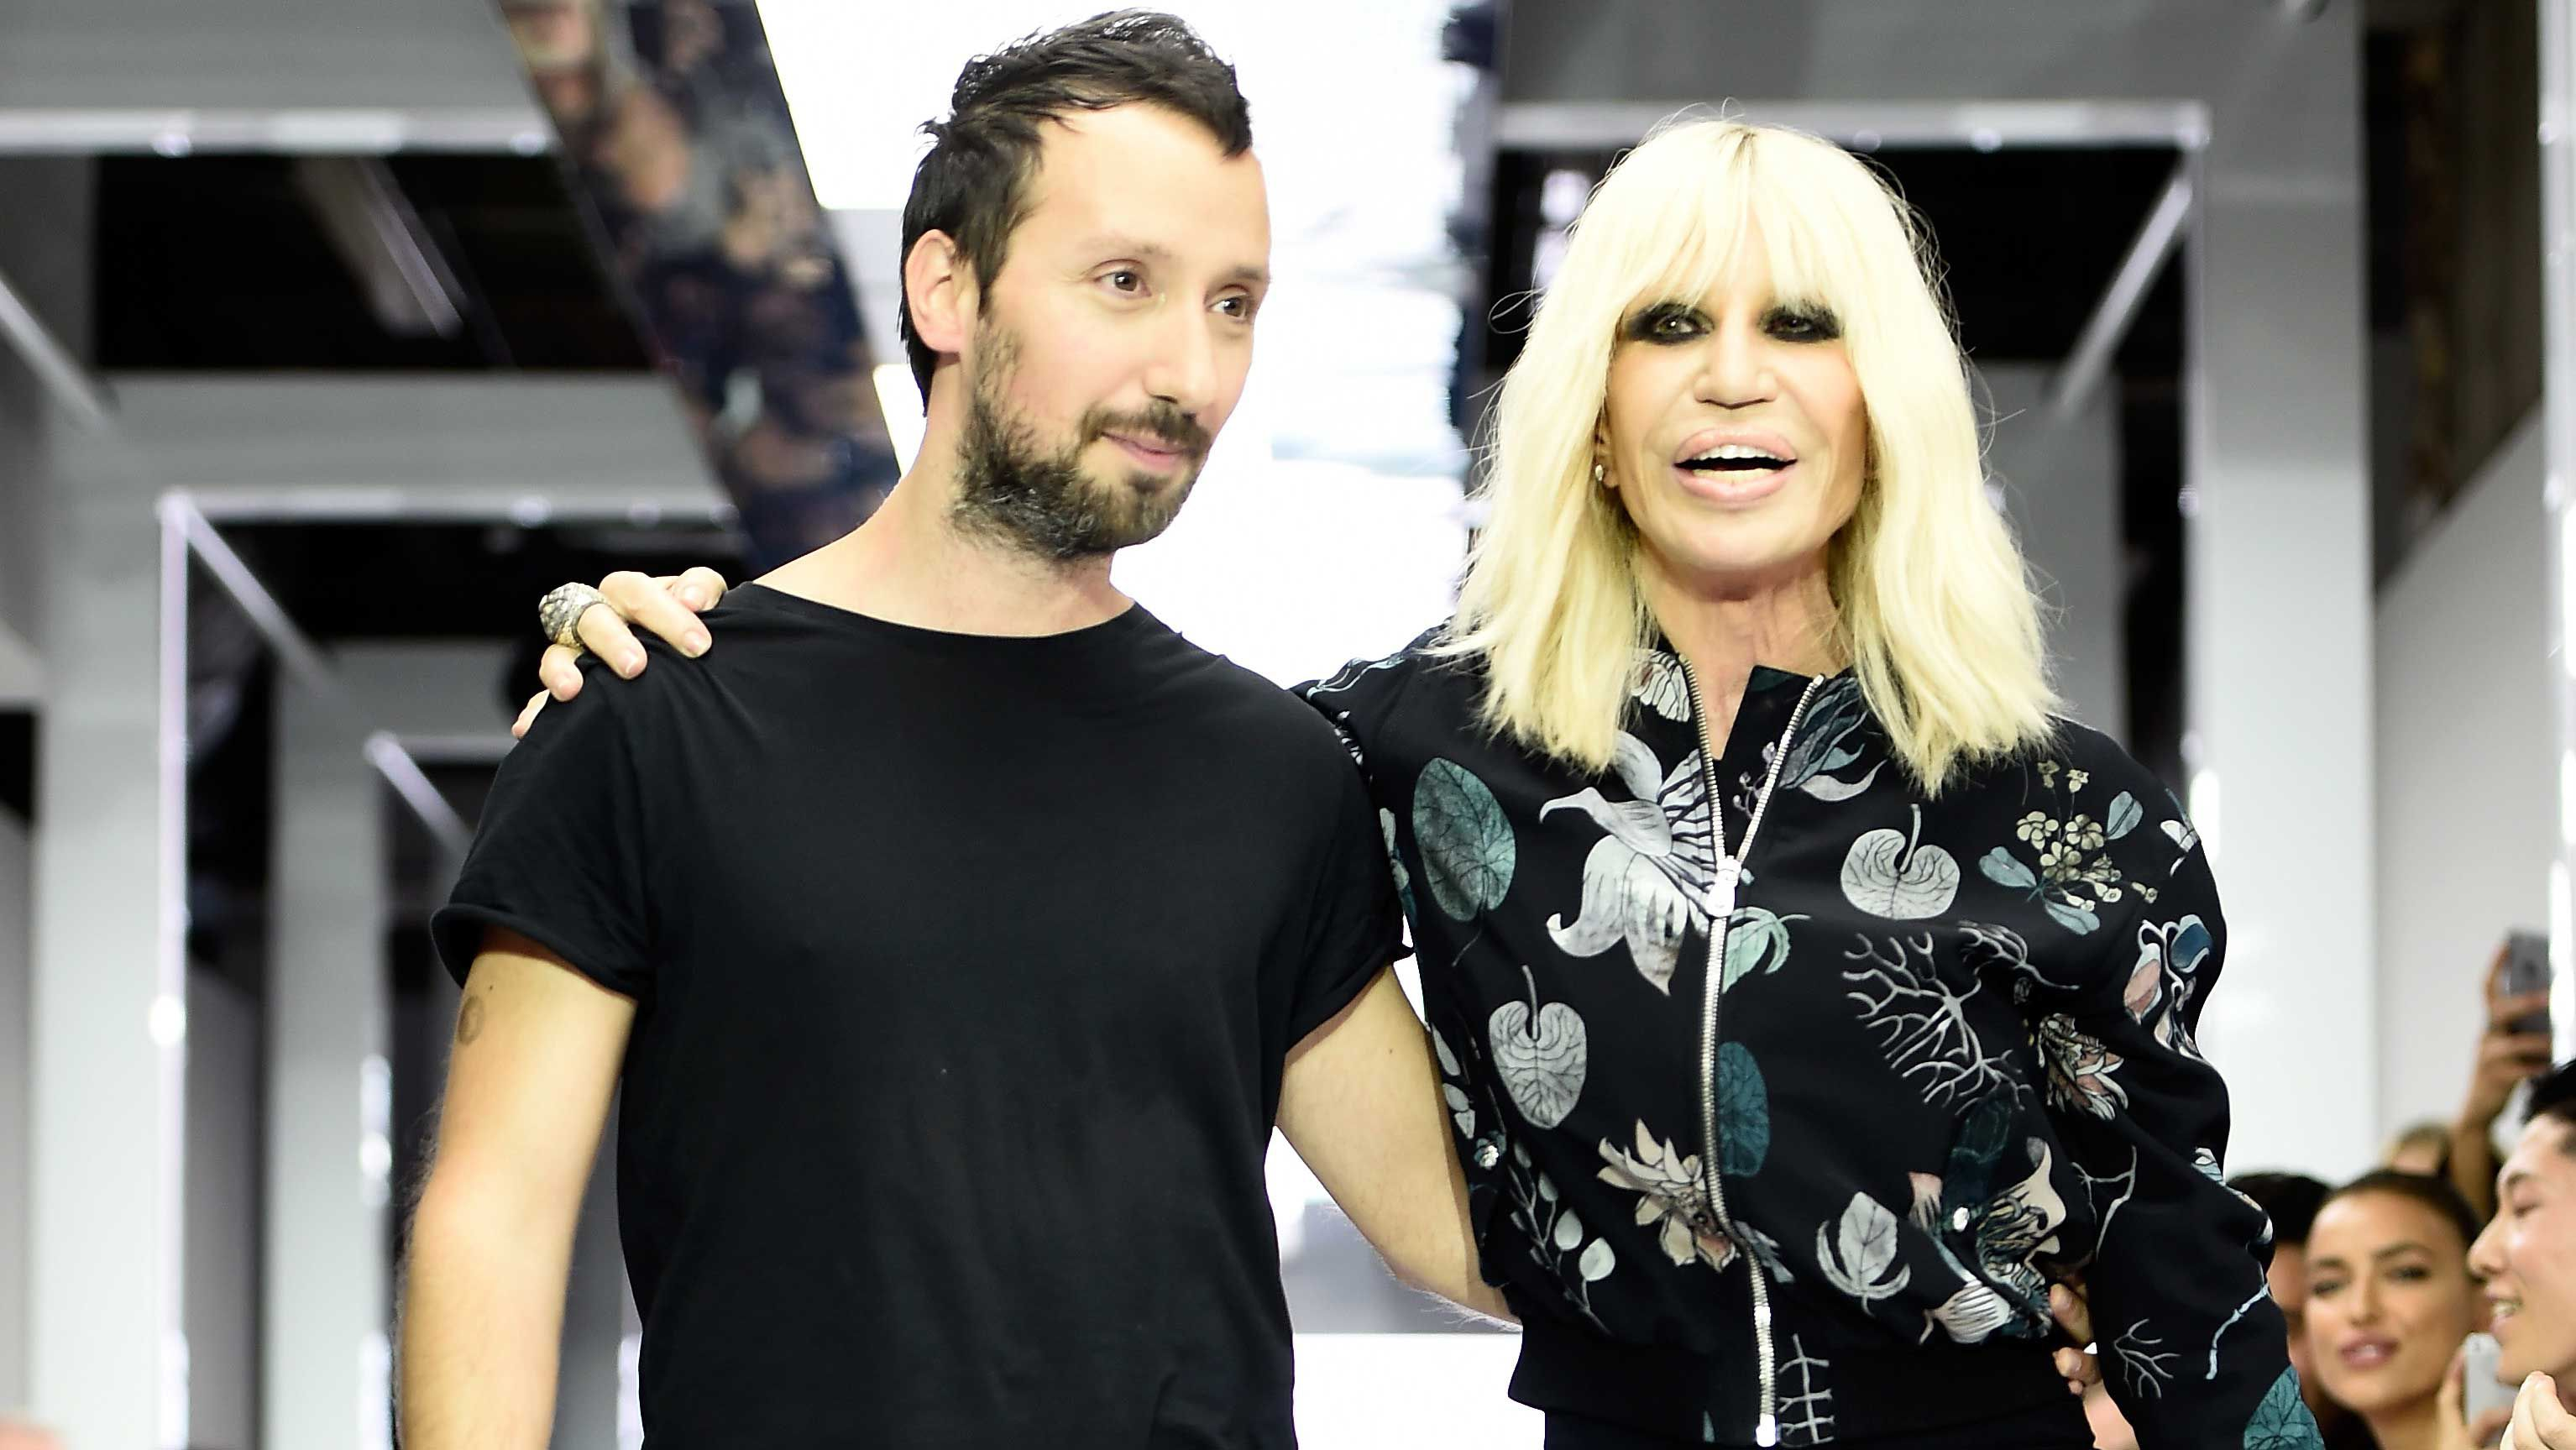 Anthony Vaccarello replaces Hedi Slimane as creative director of Saint Laurent